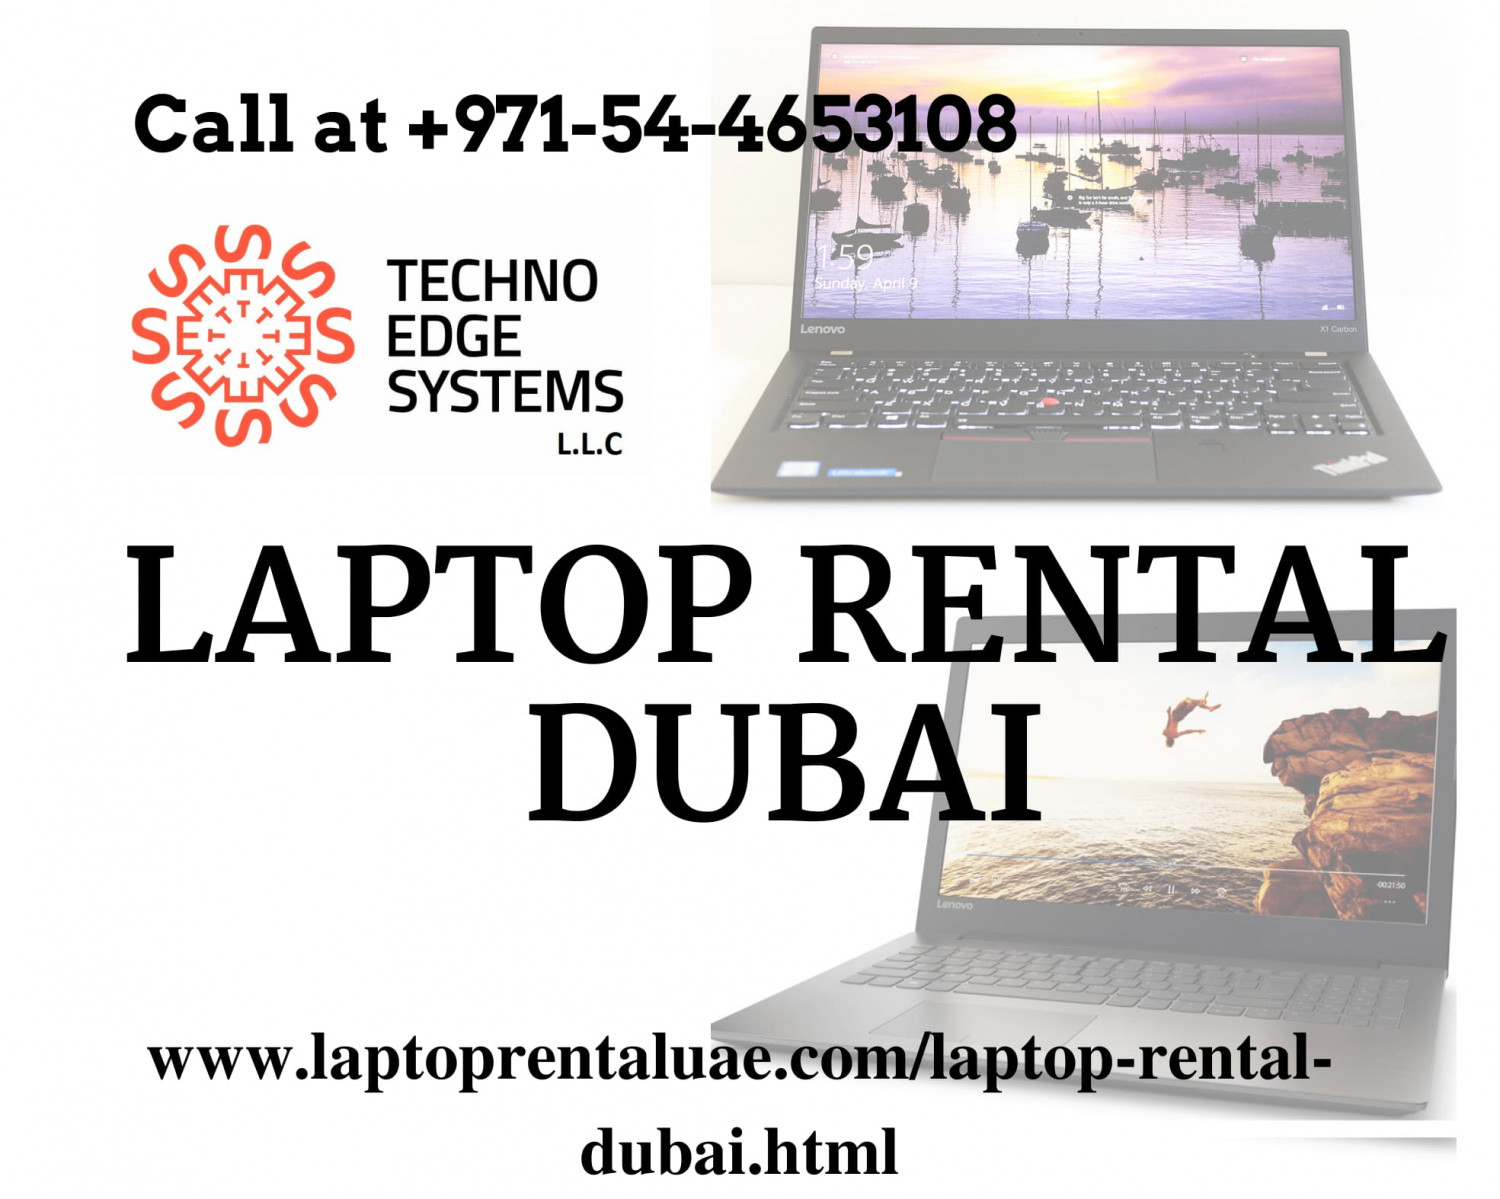 Hire or Lease Laptop Rental services, Dubai - Techno Edge Systems LLC Infographic